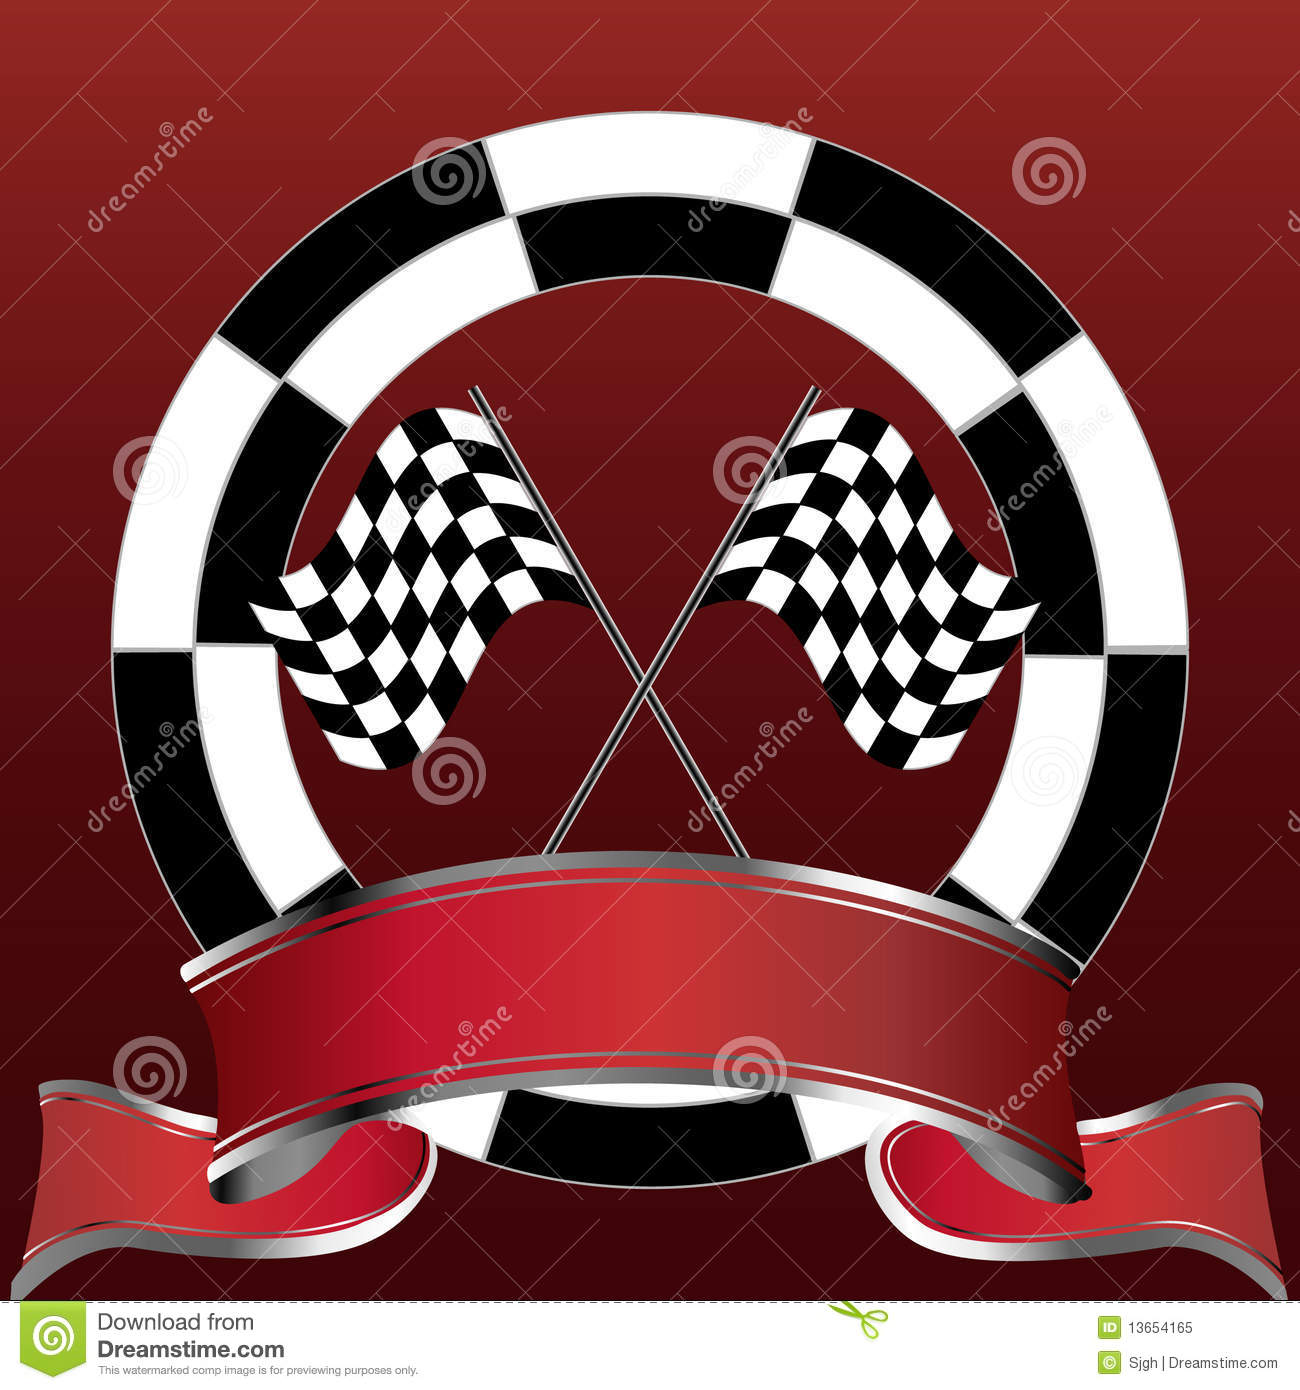 Car Wallpaper Clipart Racing Emblem With Checkered Flags And Red Banner Royalty